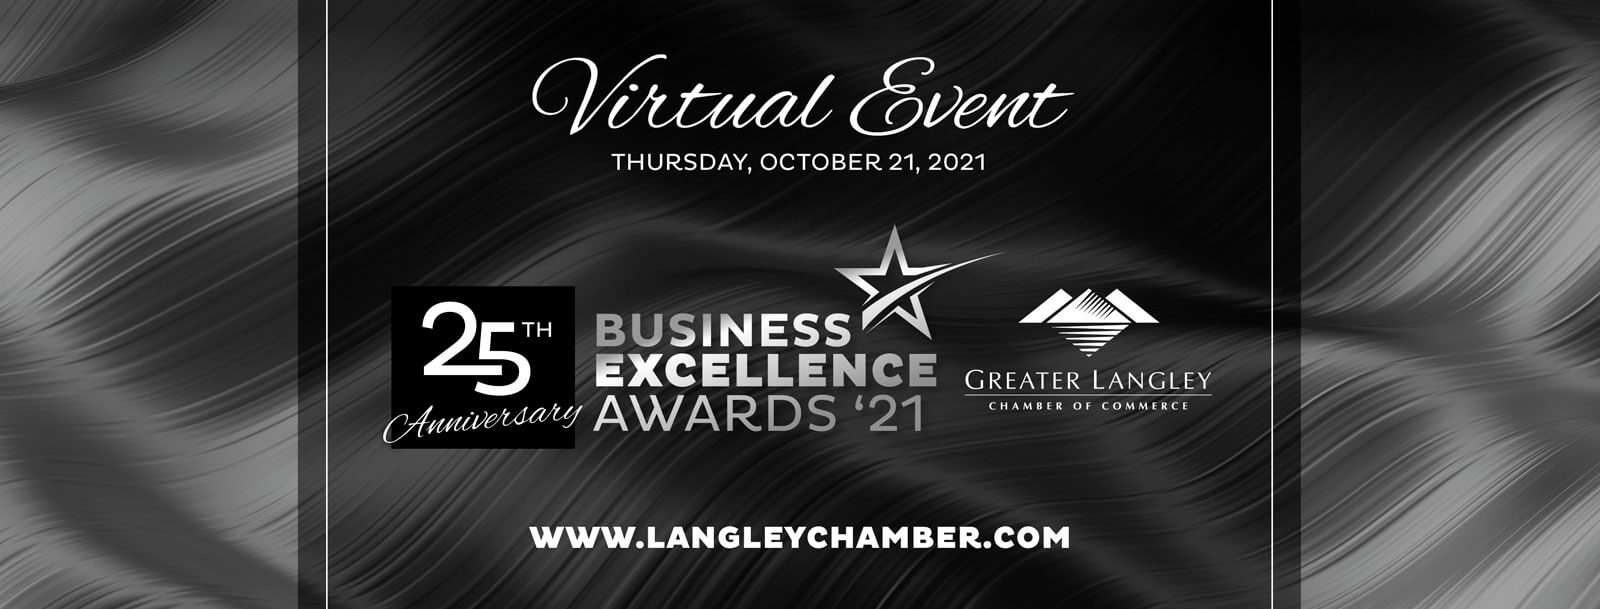 business excellence award banner